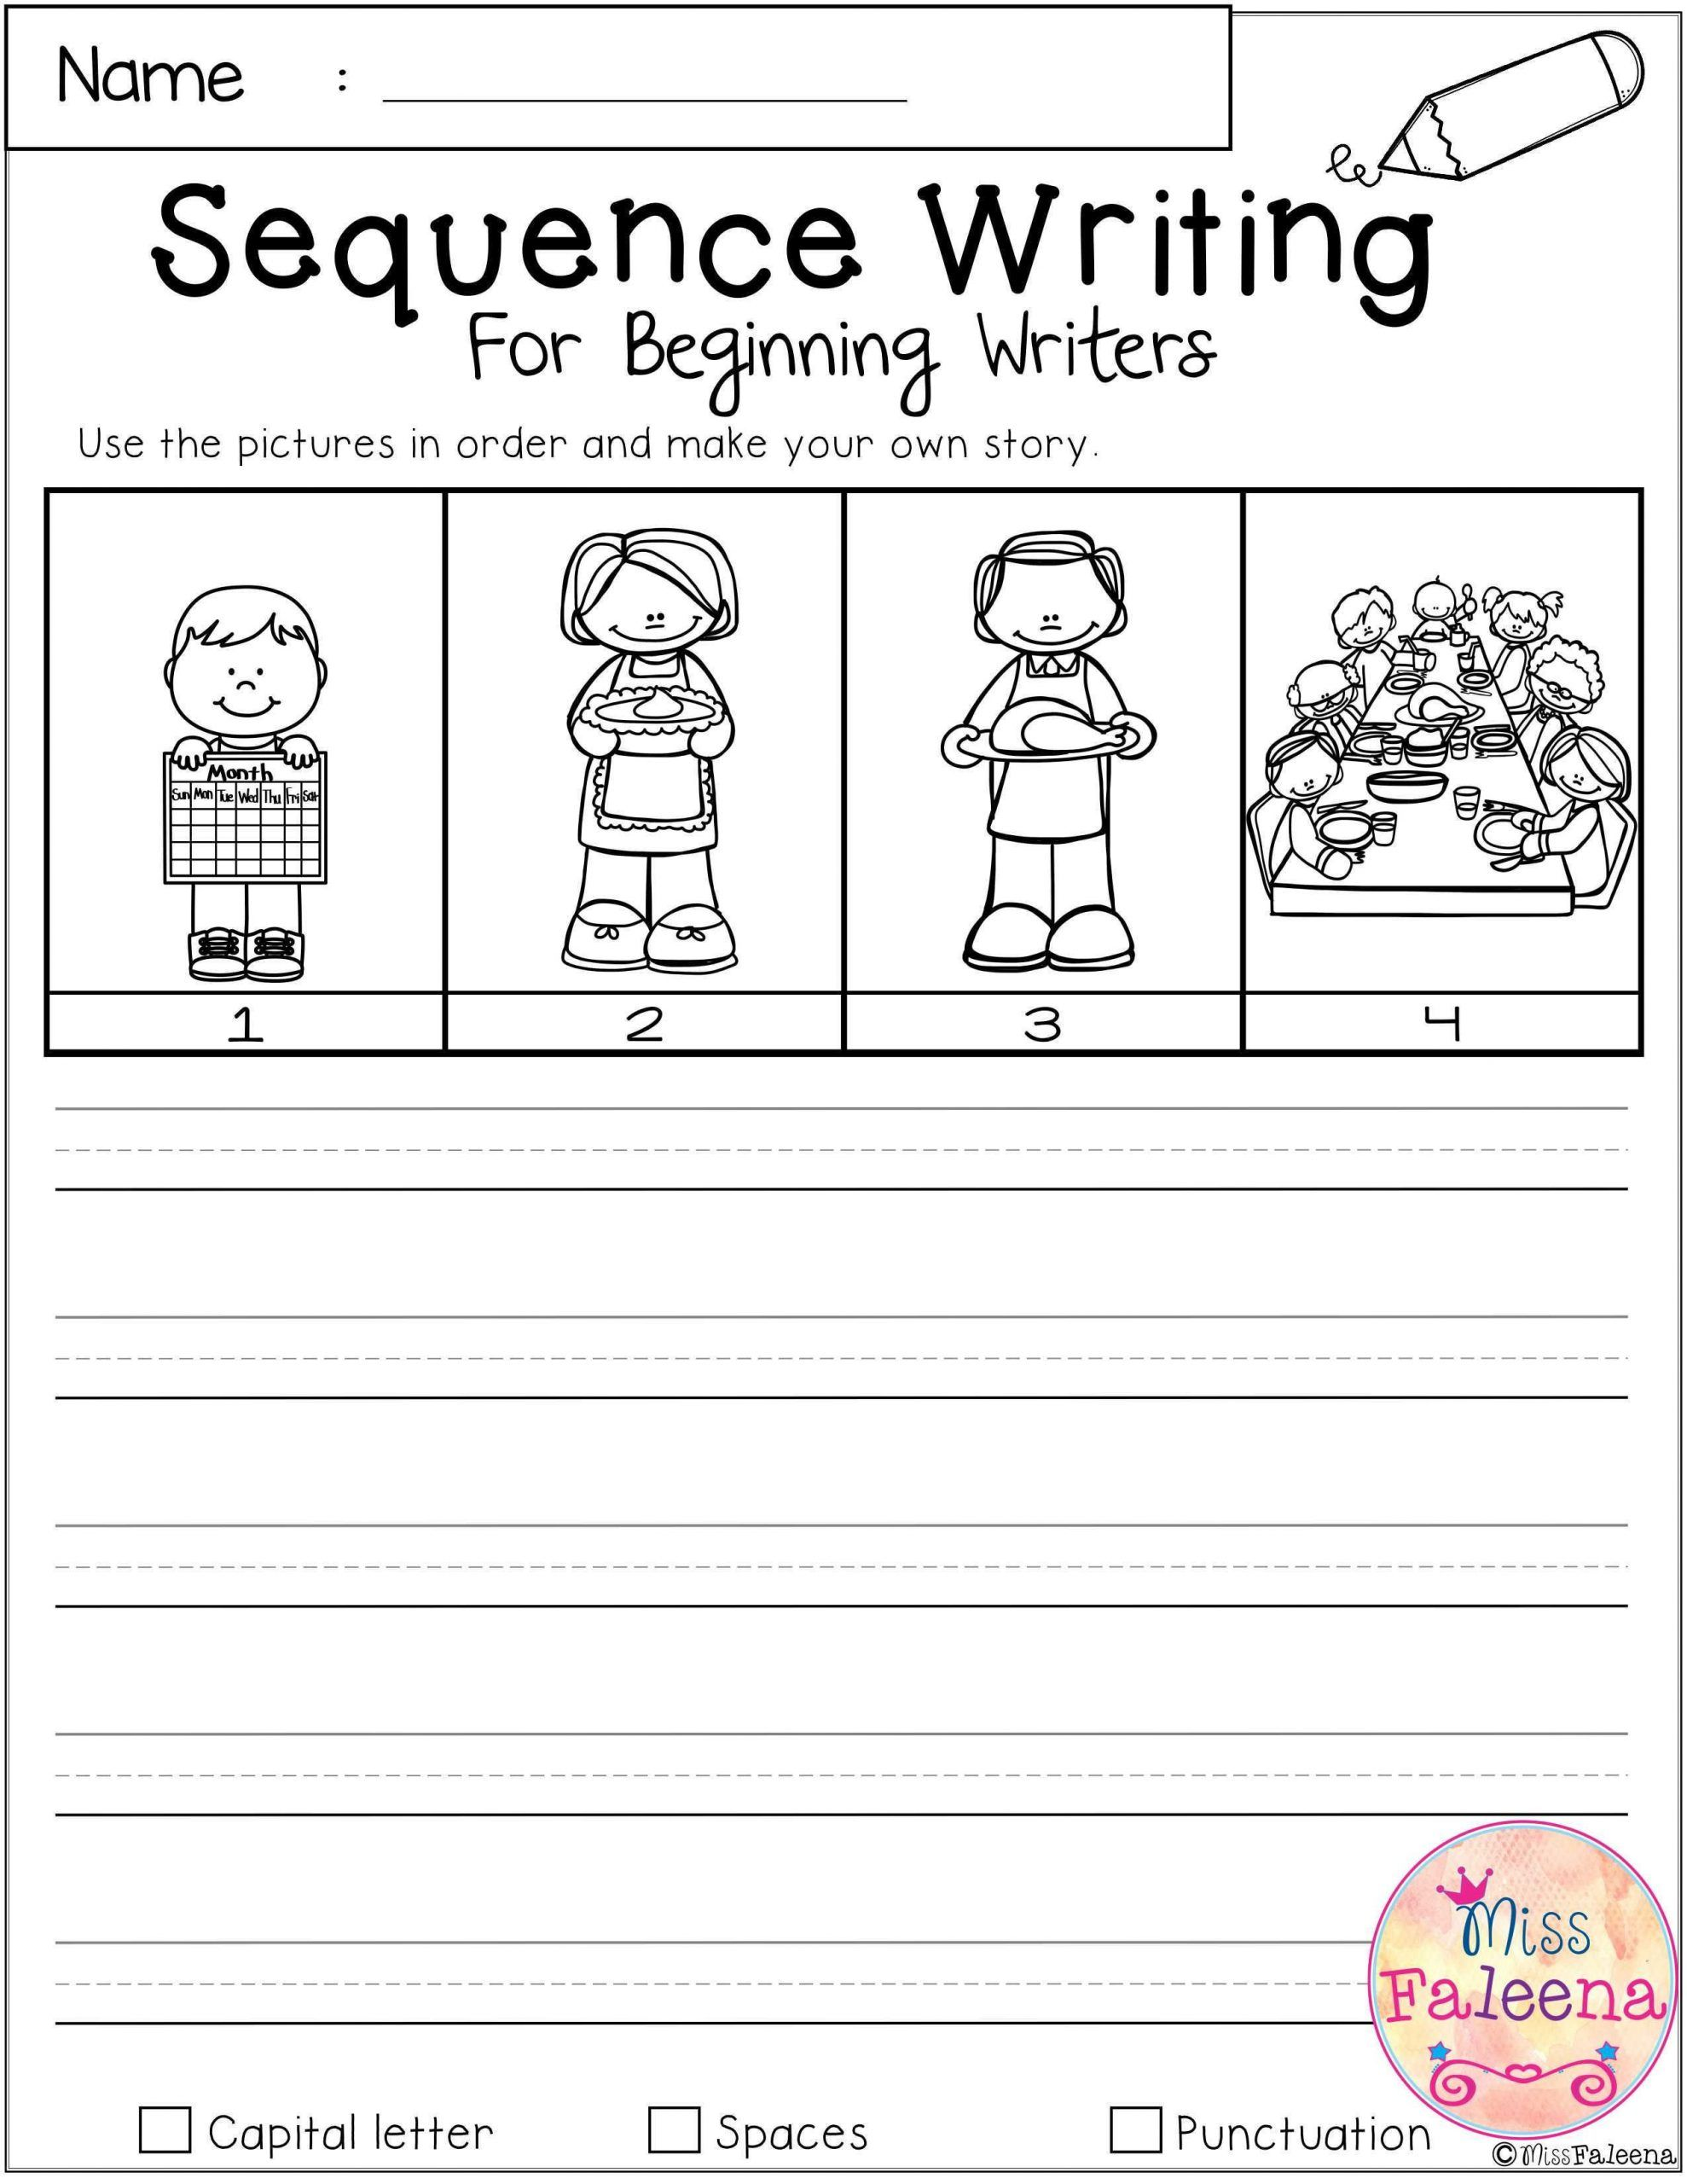 Kindergarten Writing Lesson Plans In 2020 Sequence Writing Kindergarten Writing Lessons Kindergarten Writing Lesson Plans